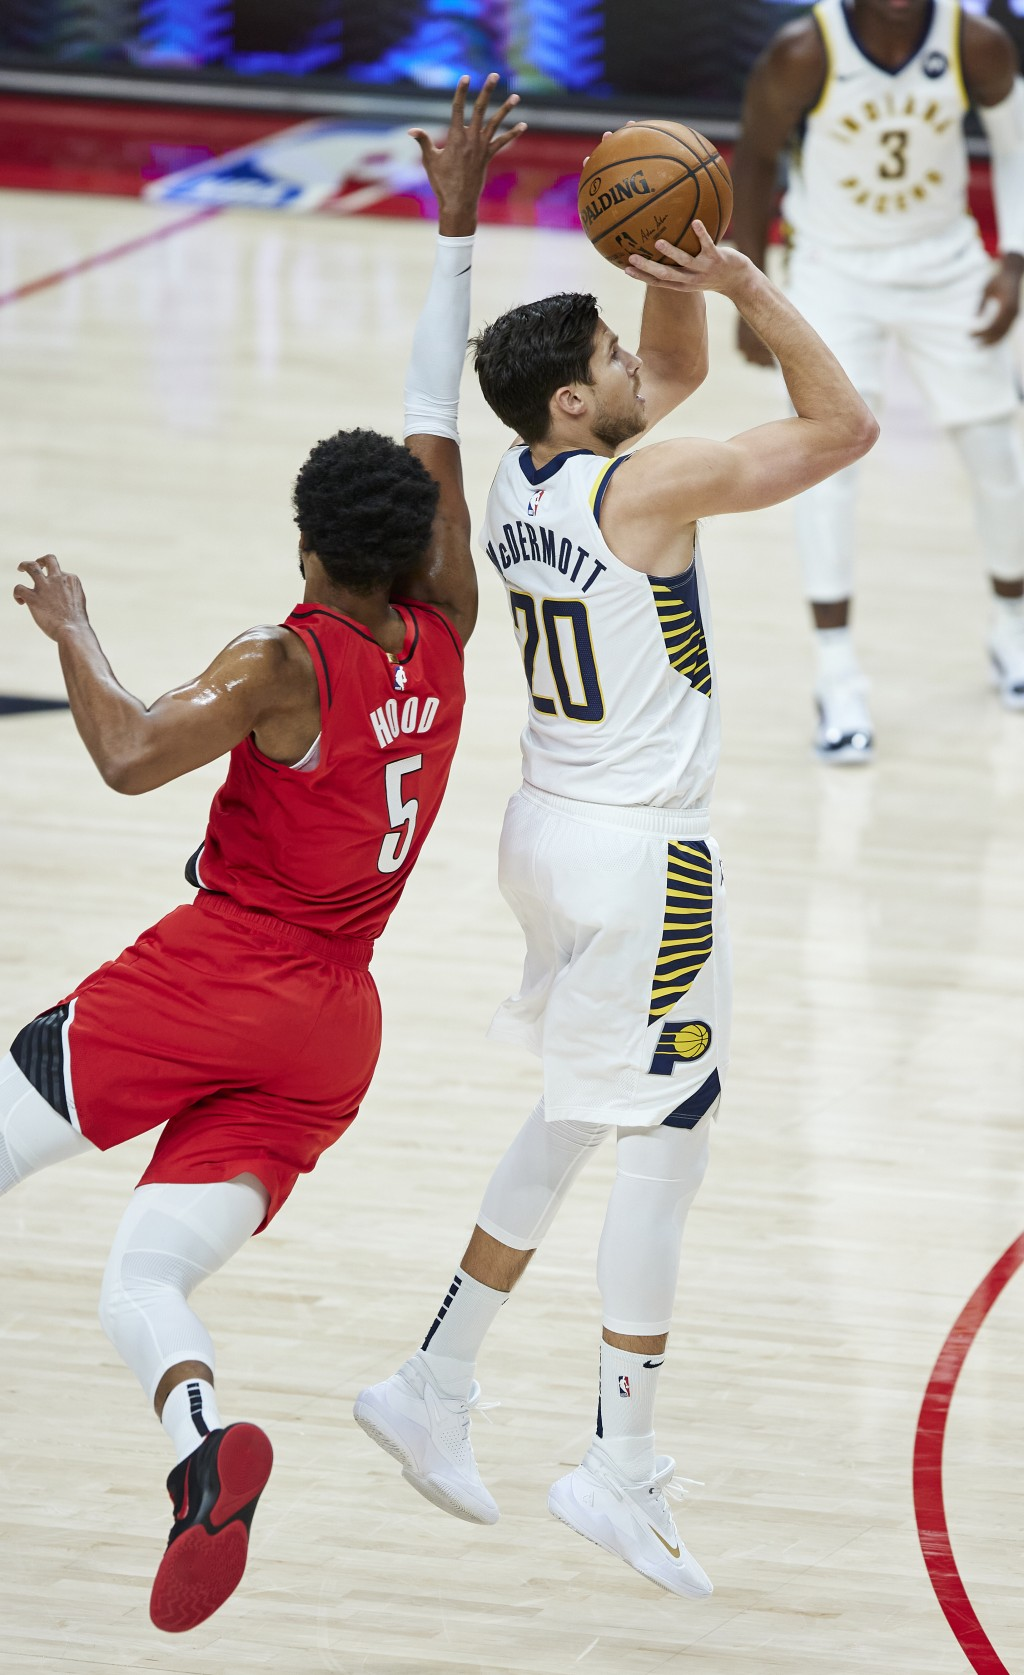 Indiana Pacers forward Doug McDermott, right, shoots a three-point basket in front of Portland Trail Blazers guard Rodney Hood during the first half o...